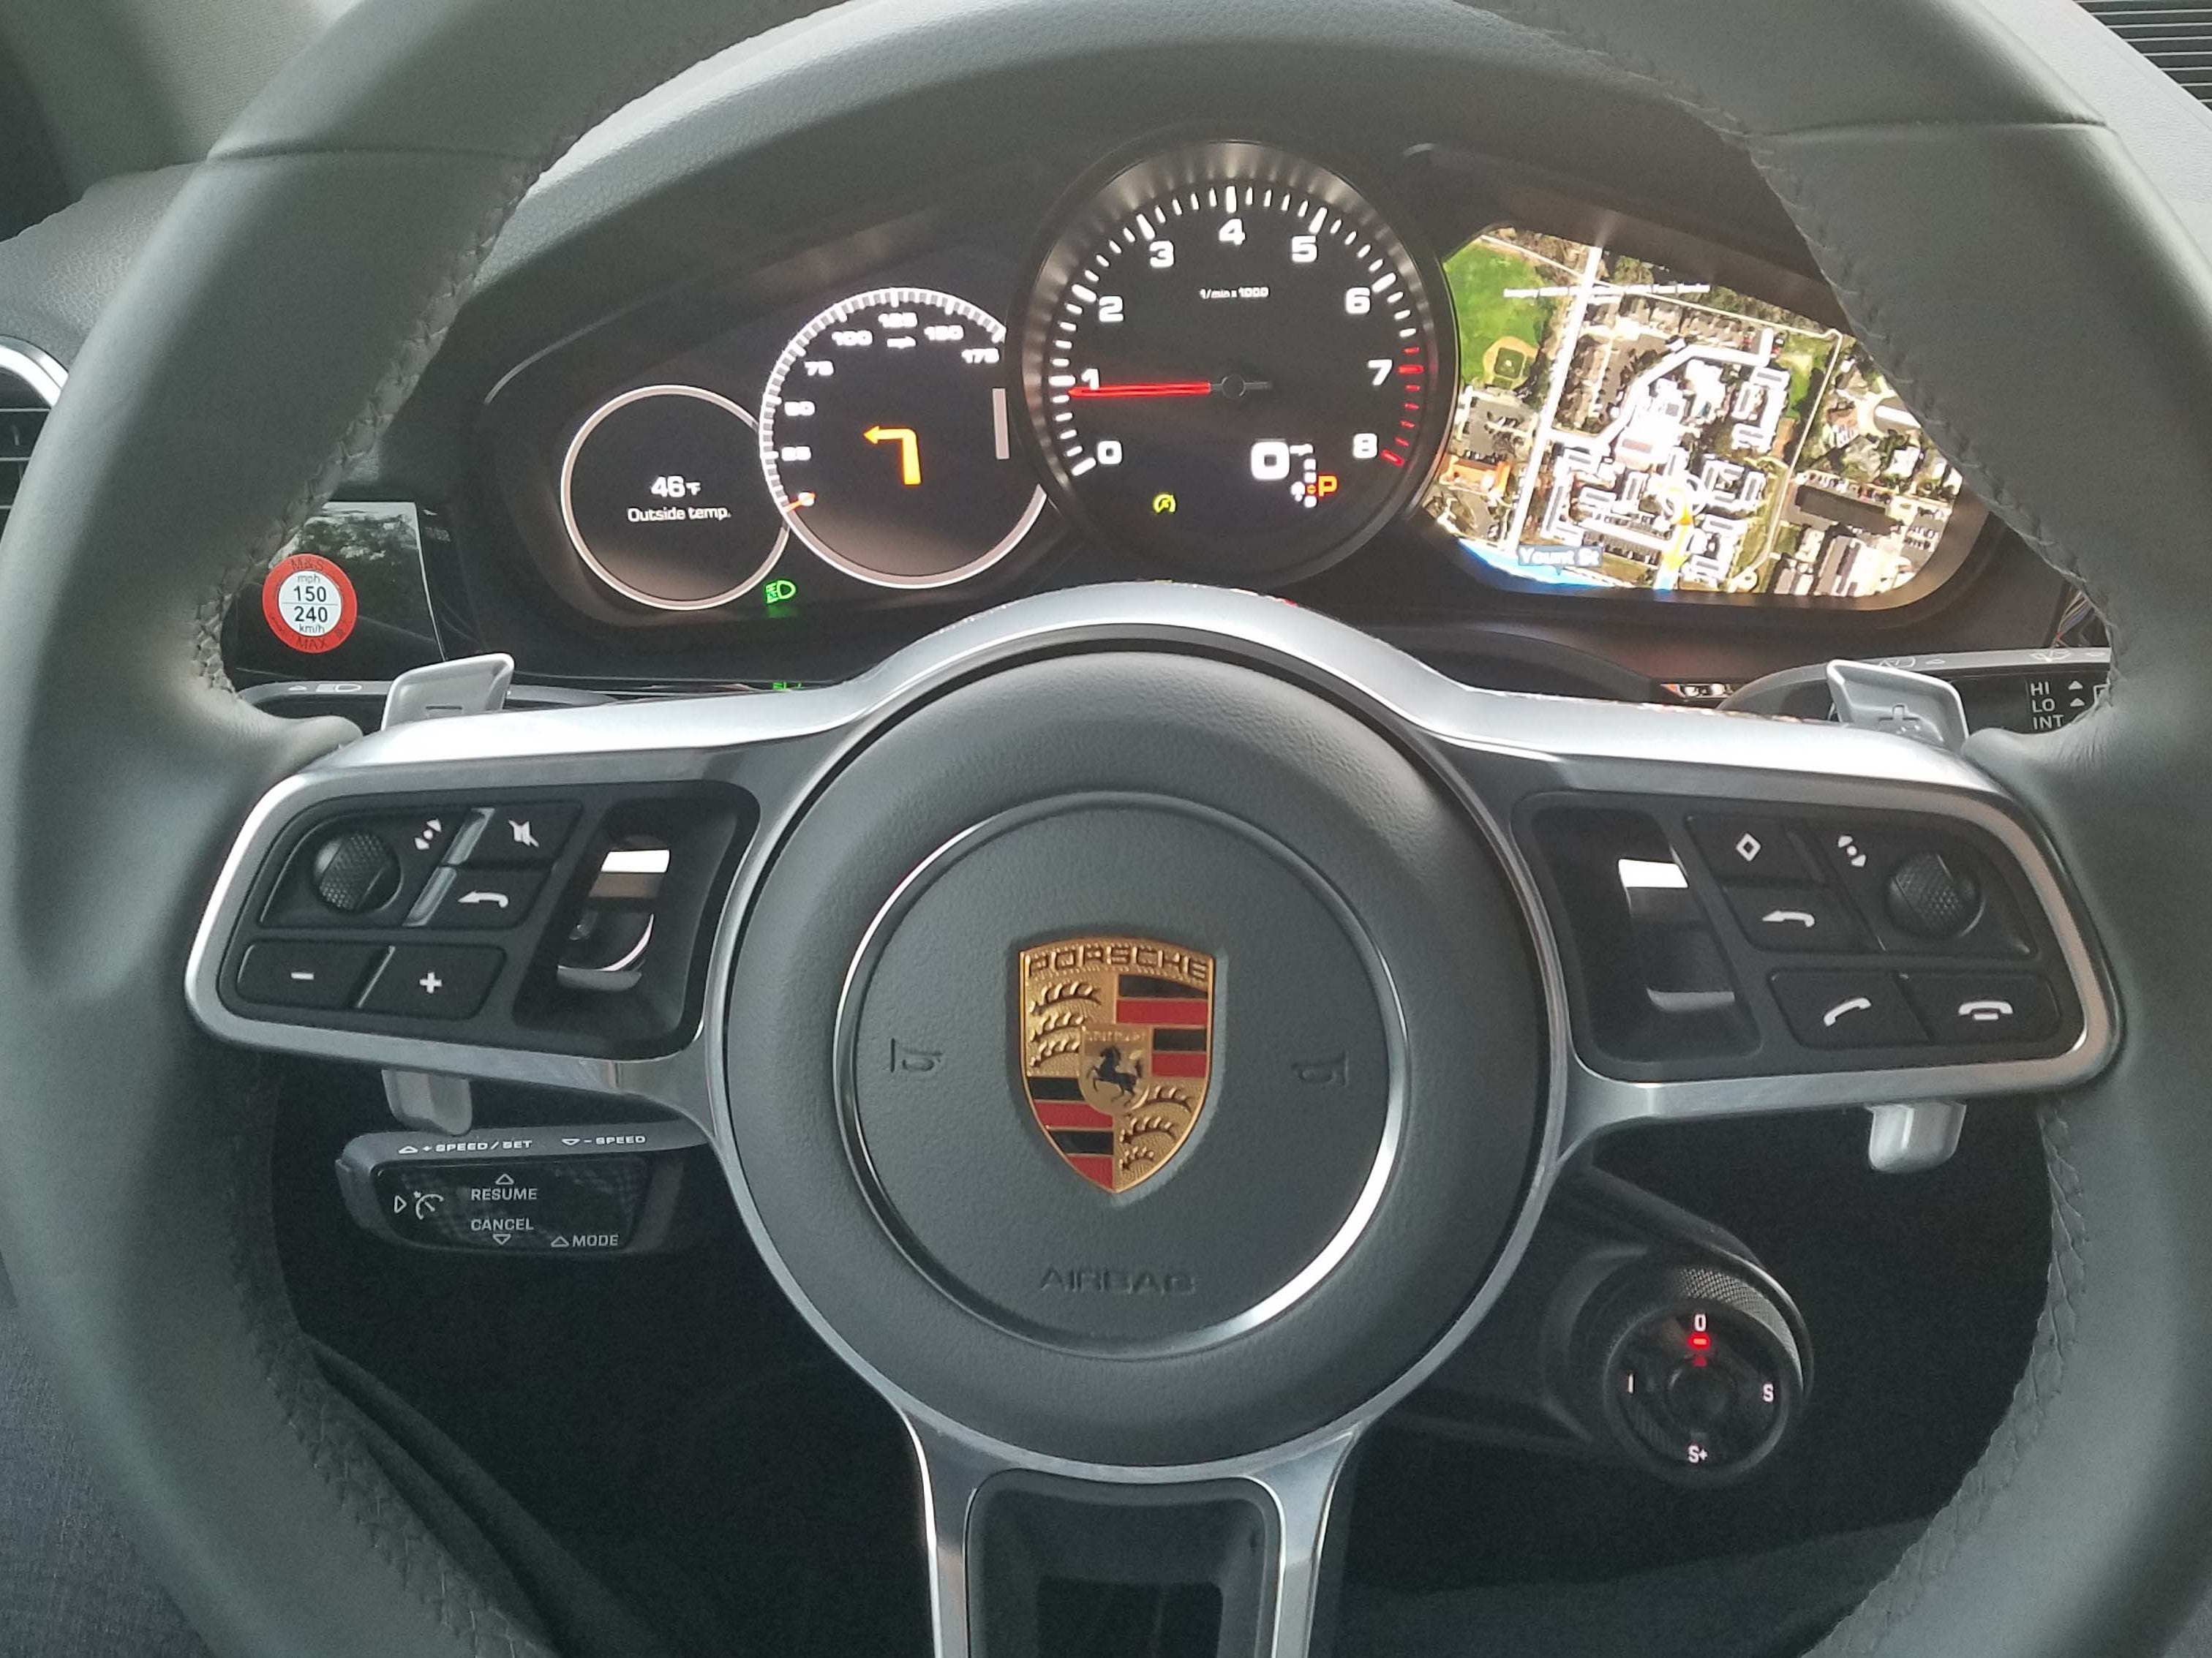 While Porsche keeps its sports car steering wheels spare — the 2019 Cayenne is loaded with gizmos including the Sport Response button hanging off the center hub, cruise control stalk and buttons for volume/voice commands.